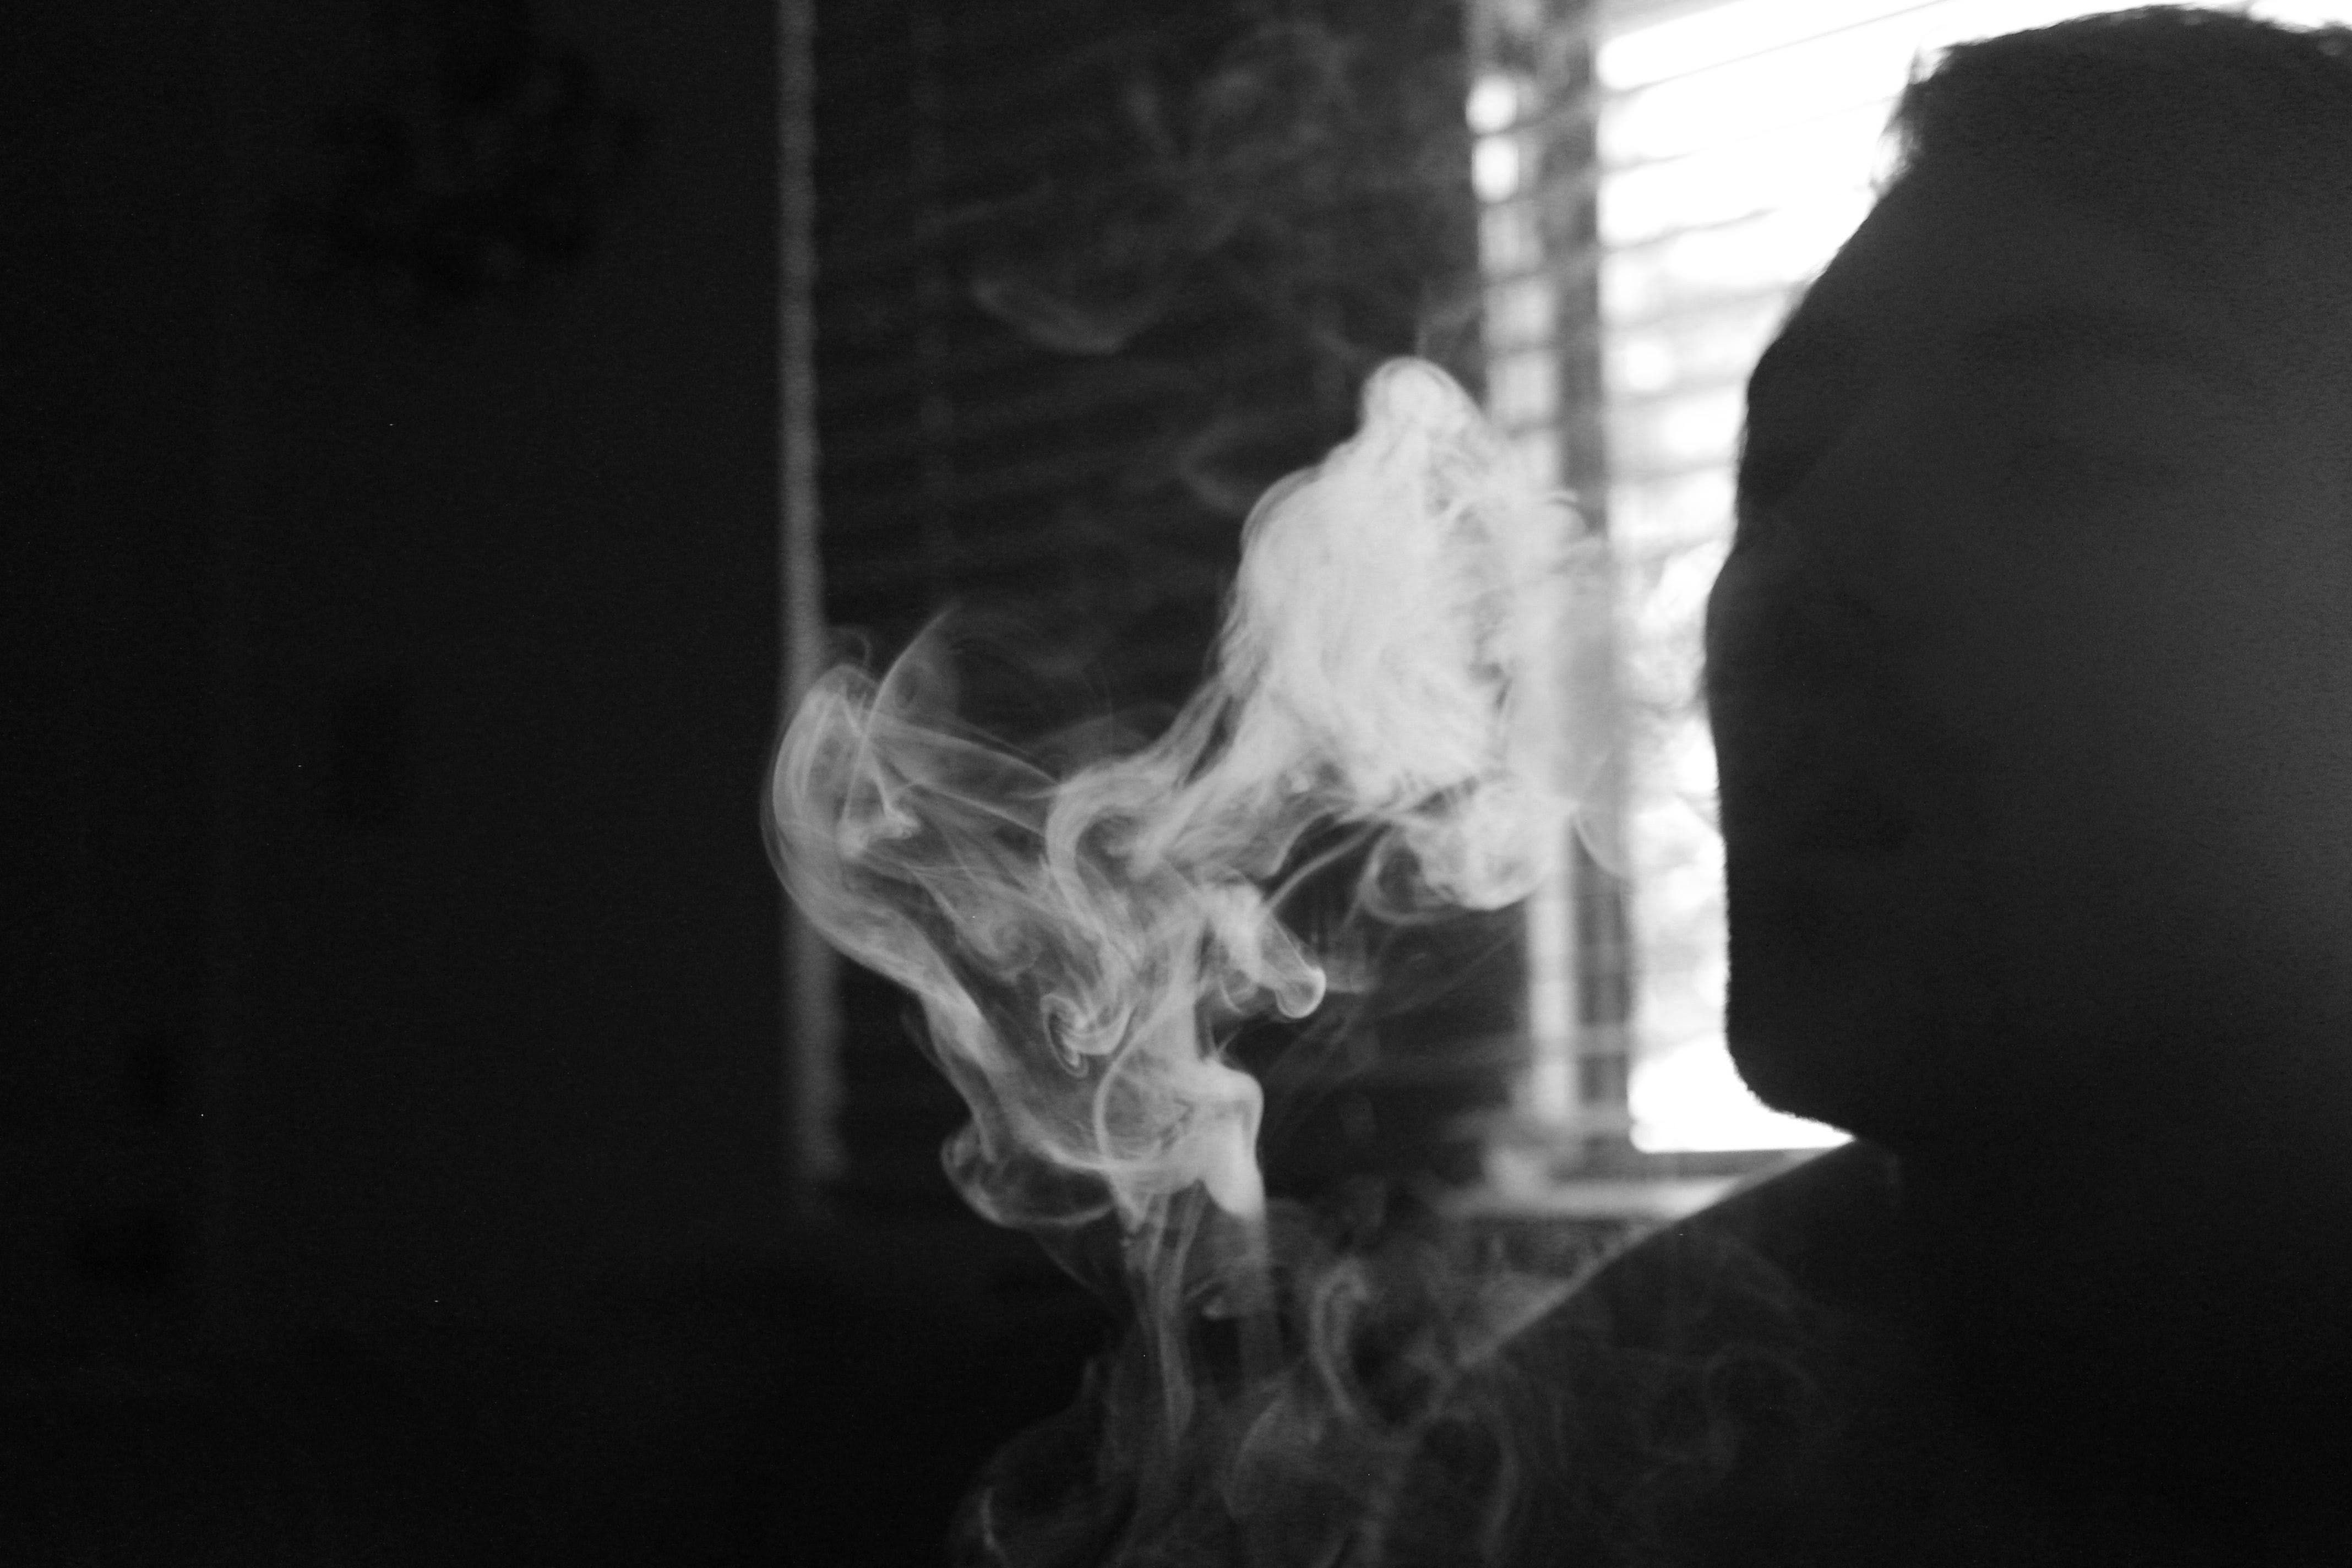 Gray Scale Photo of Human Smoking Inside the Room